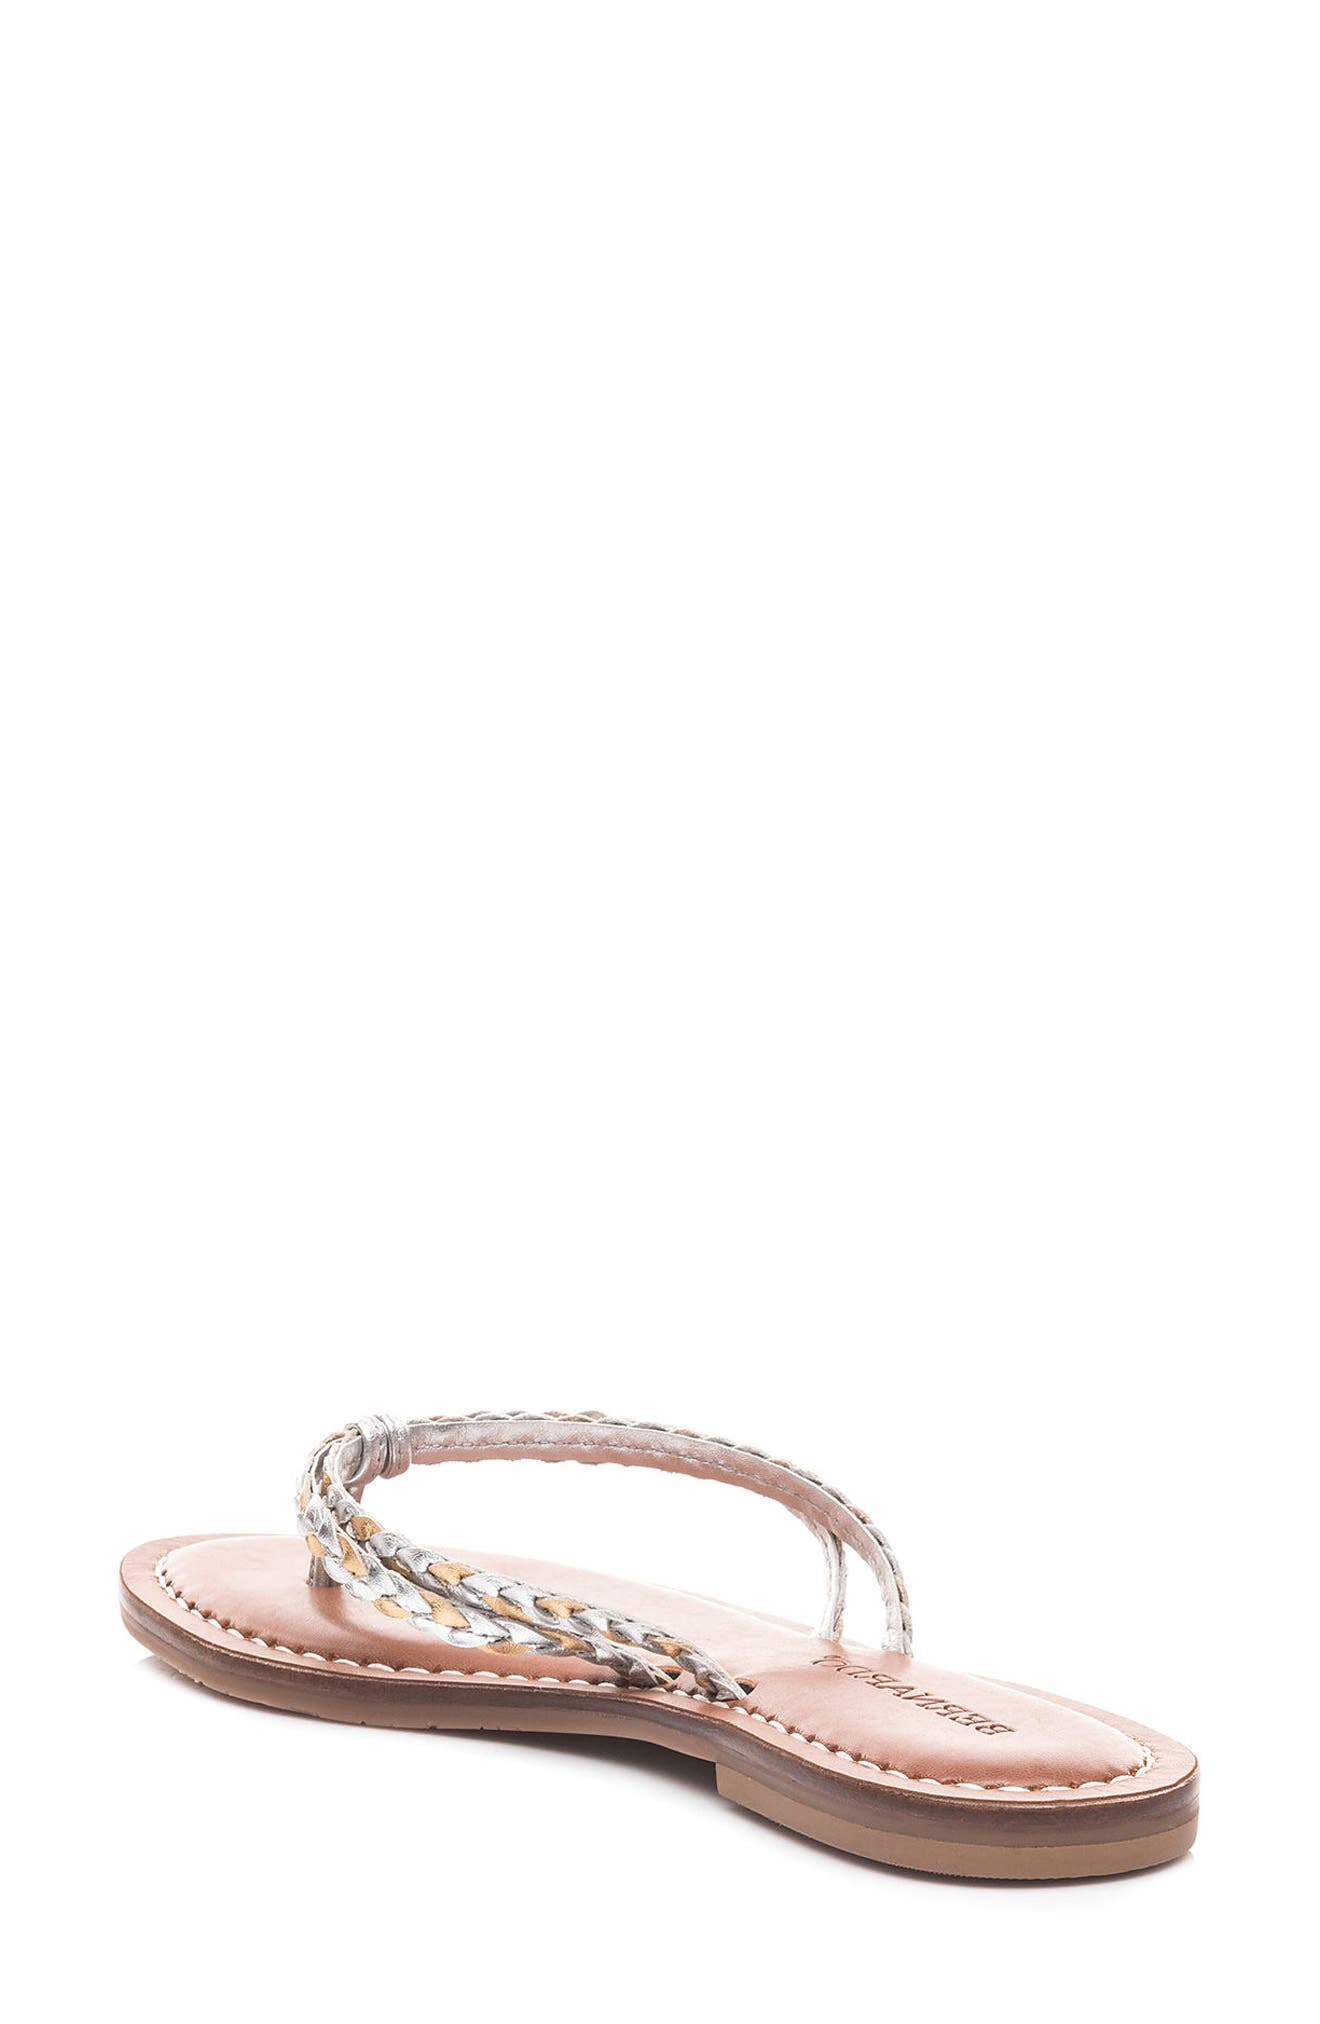 Bernardo Greta Braided Strap Sandal,                             Alternate thumbnail 9, color,